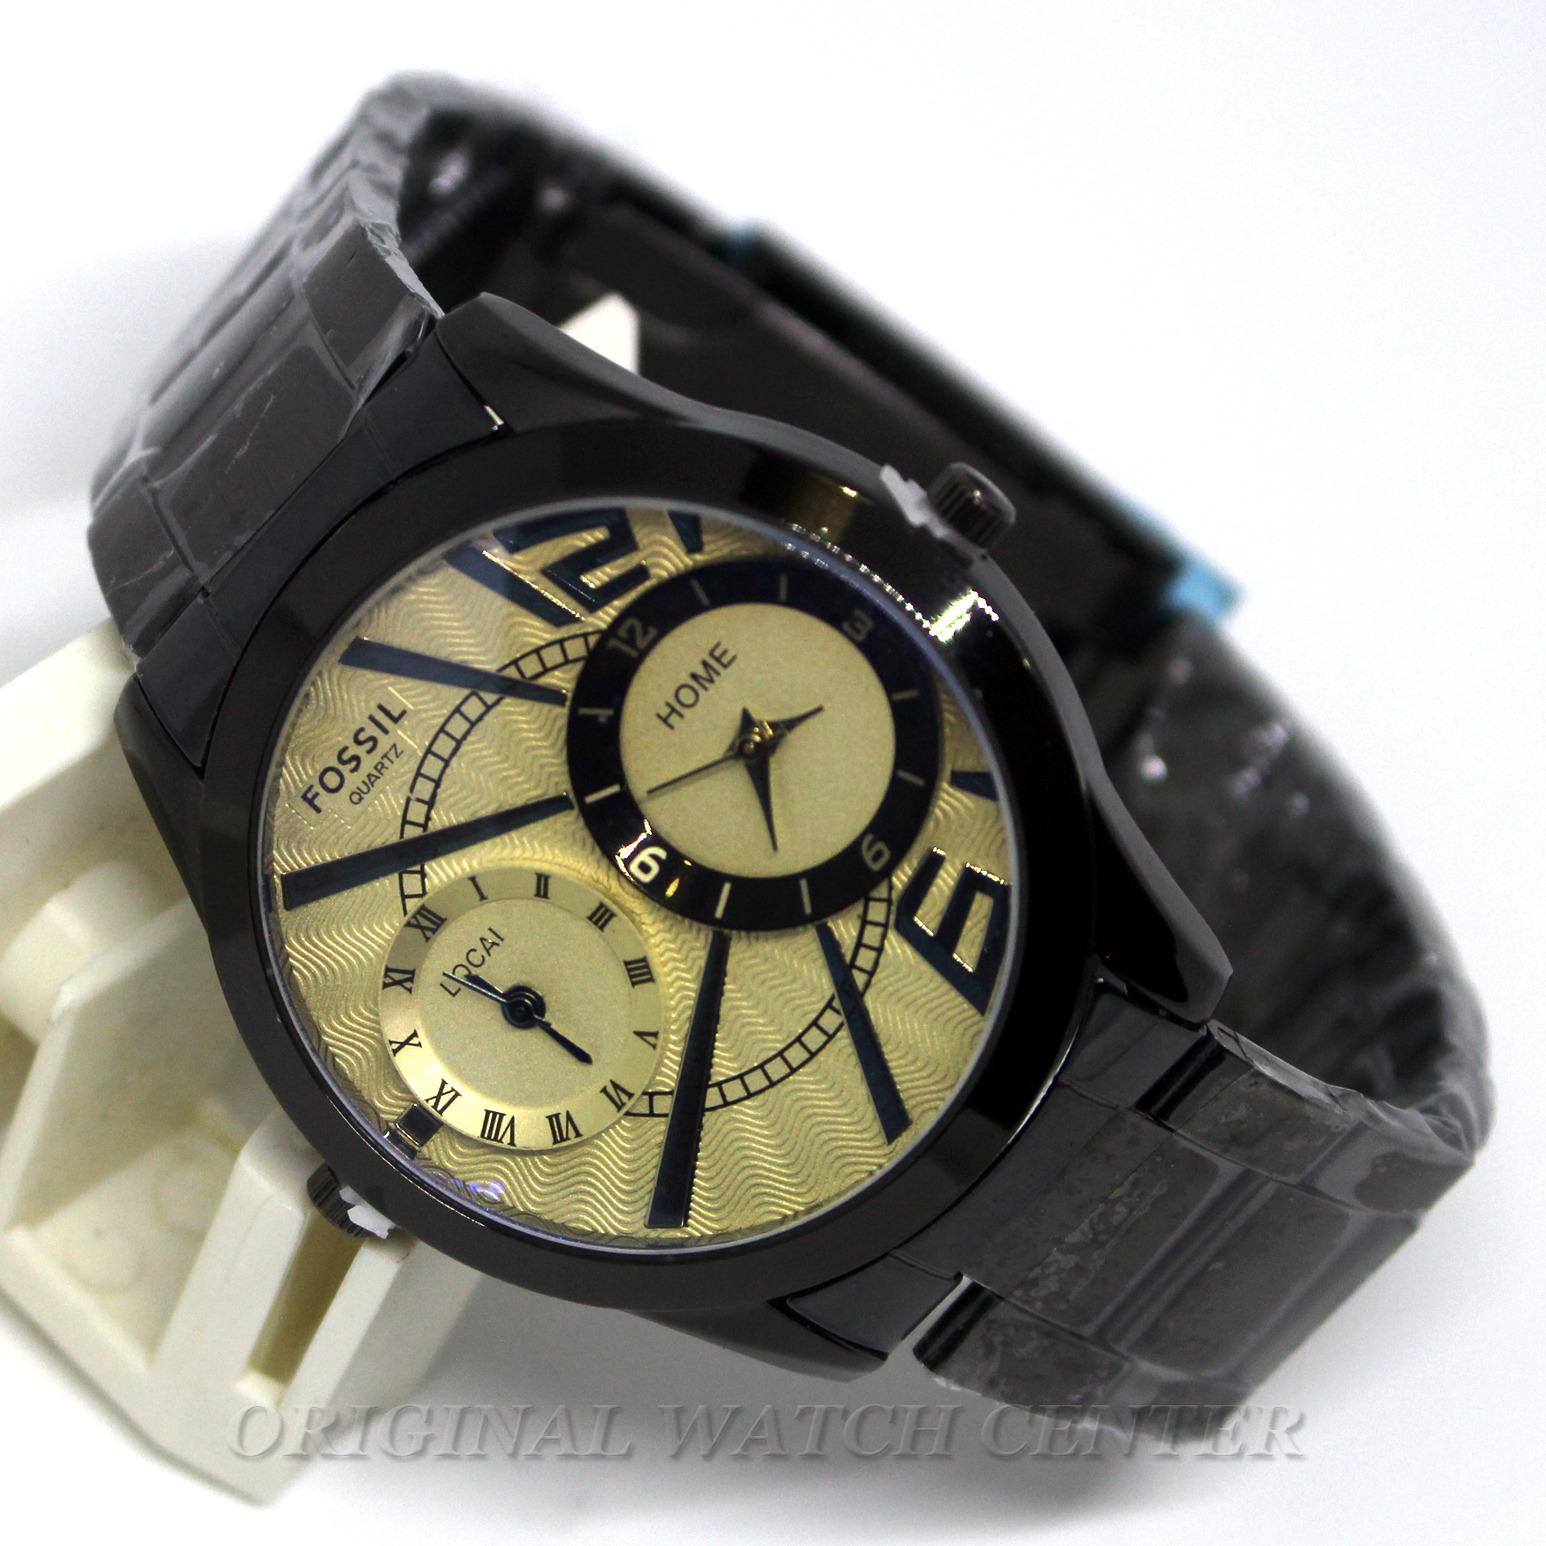 Kehebatan Fossil Me3029 Jam Tangan Fashion Pria Elegant Fiture Me3043 Original Dual Time Quartz Stainless Steel